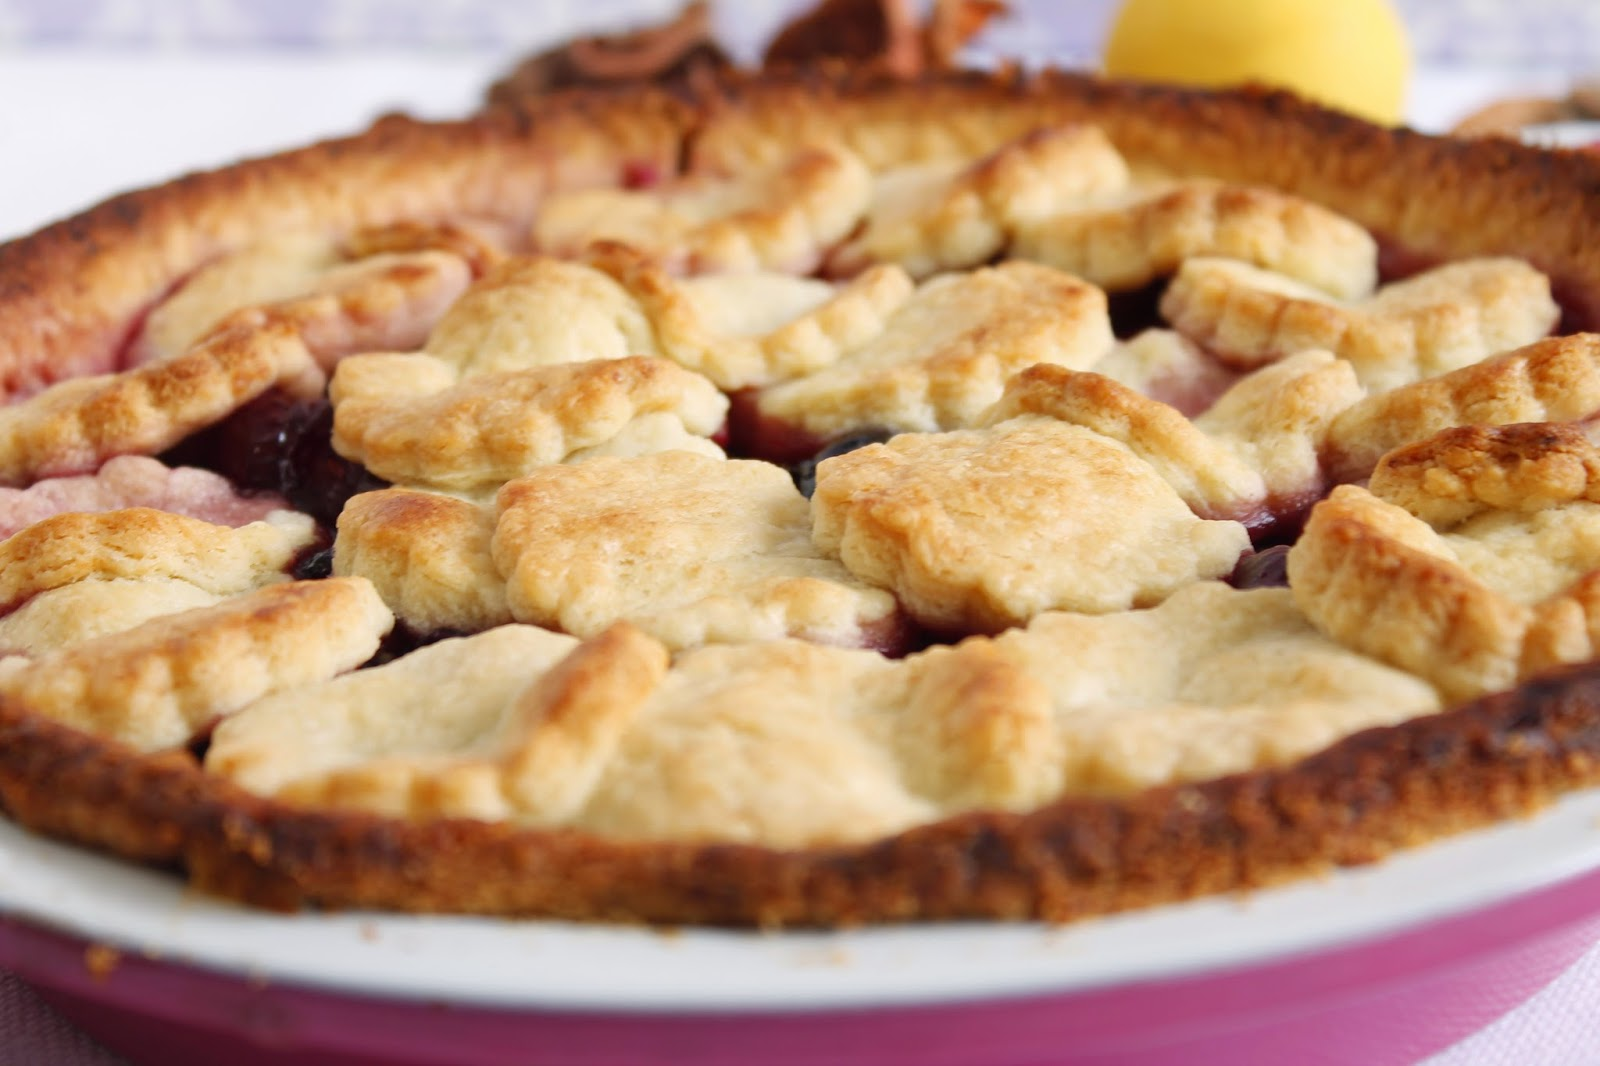 Receta Cherry pie o pie de cerezas